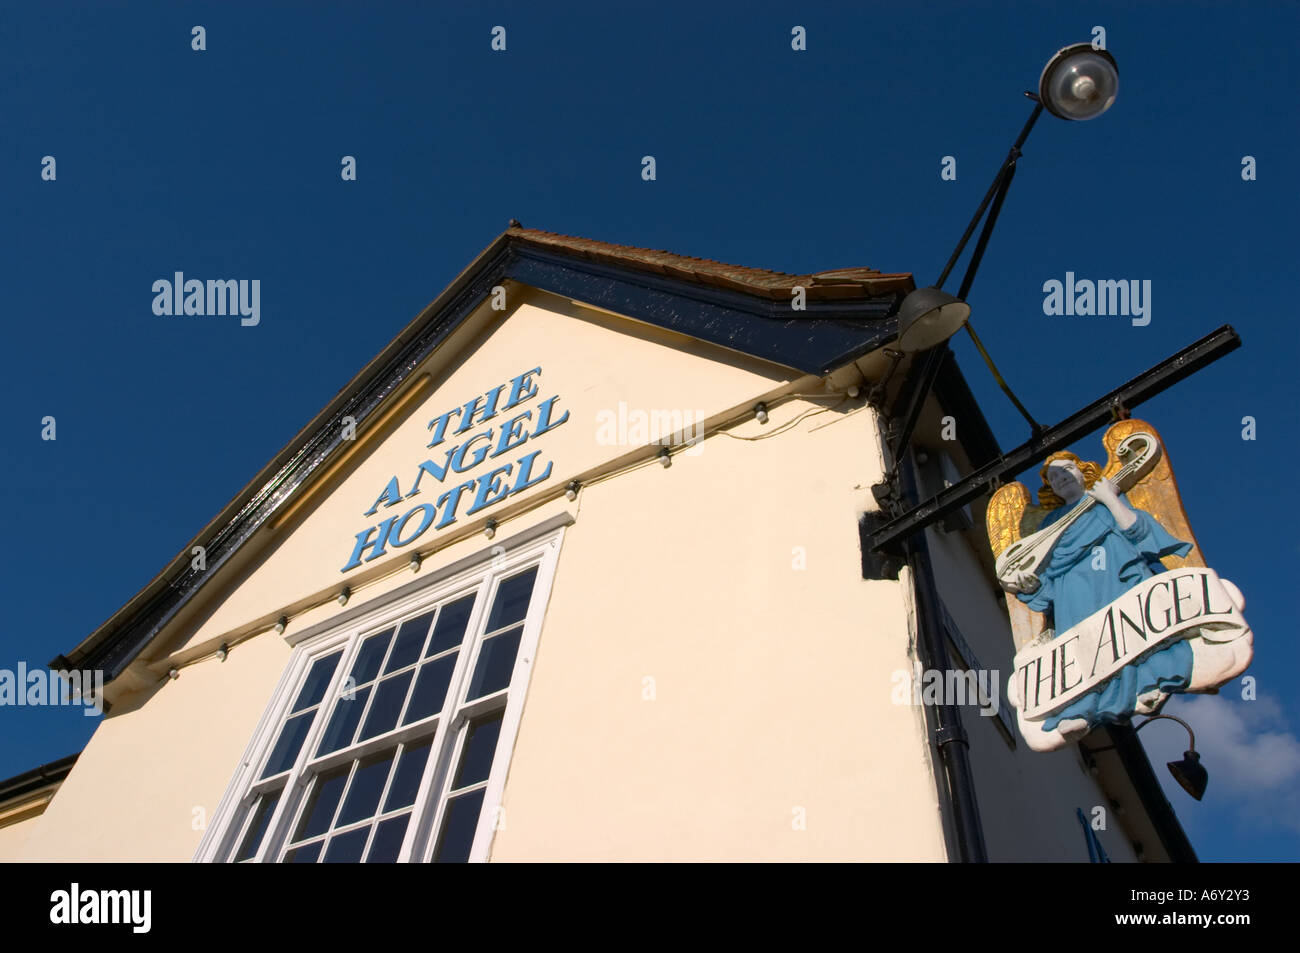 The Angel Hotel Lavenham Suffolk England Stock Photo